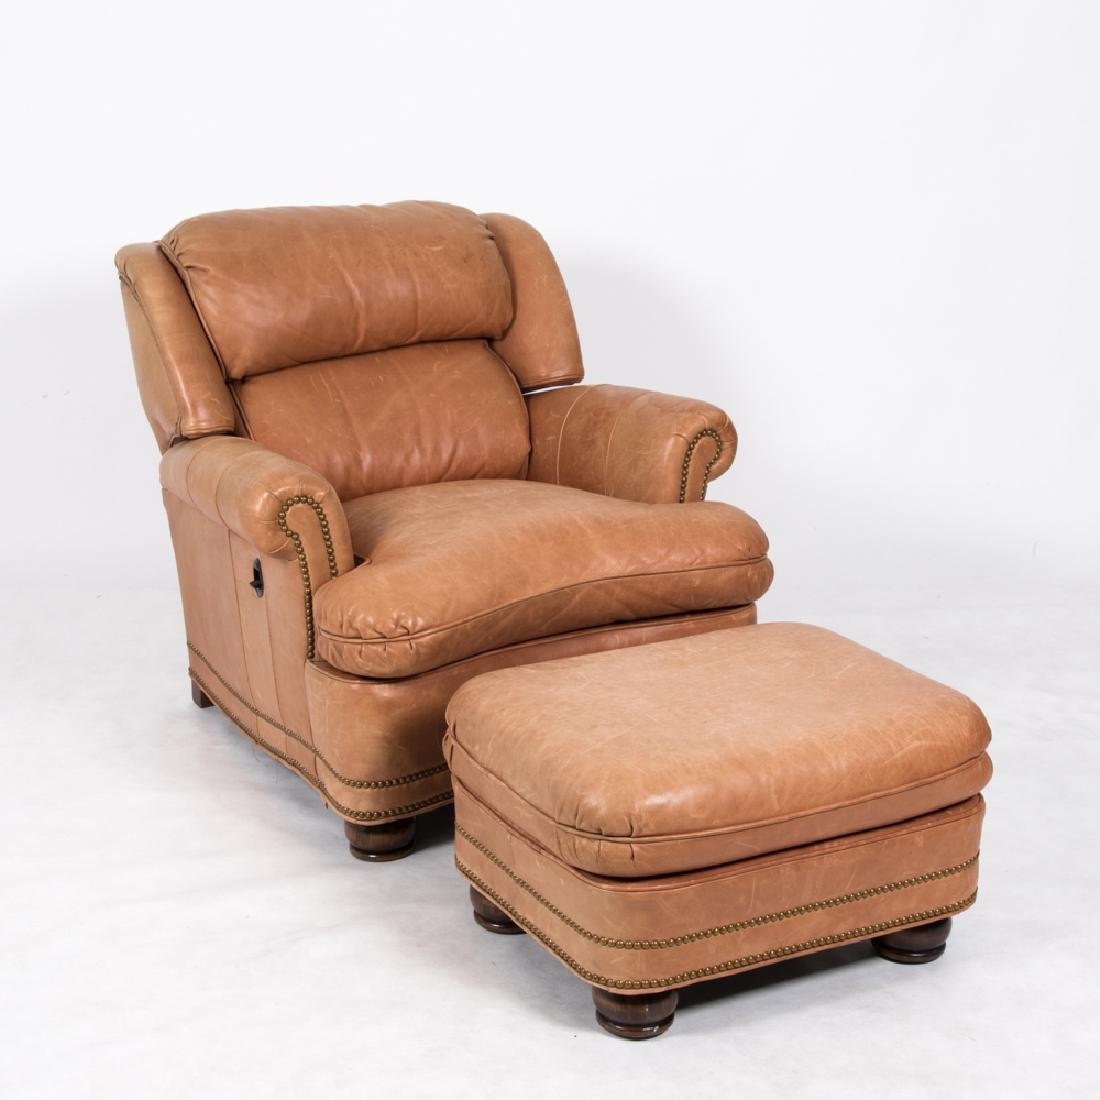 A Hancock and Moore Leather Upholstered Reclining